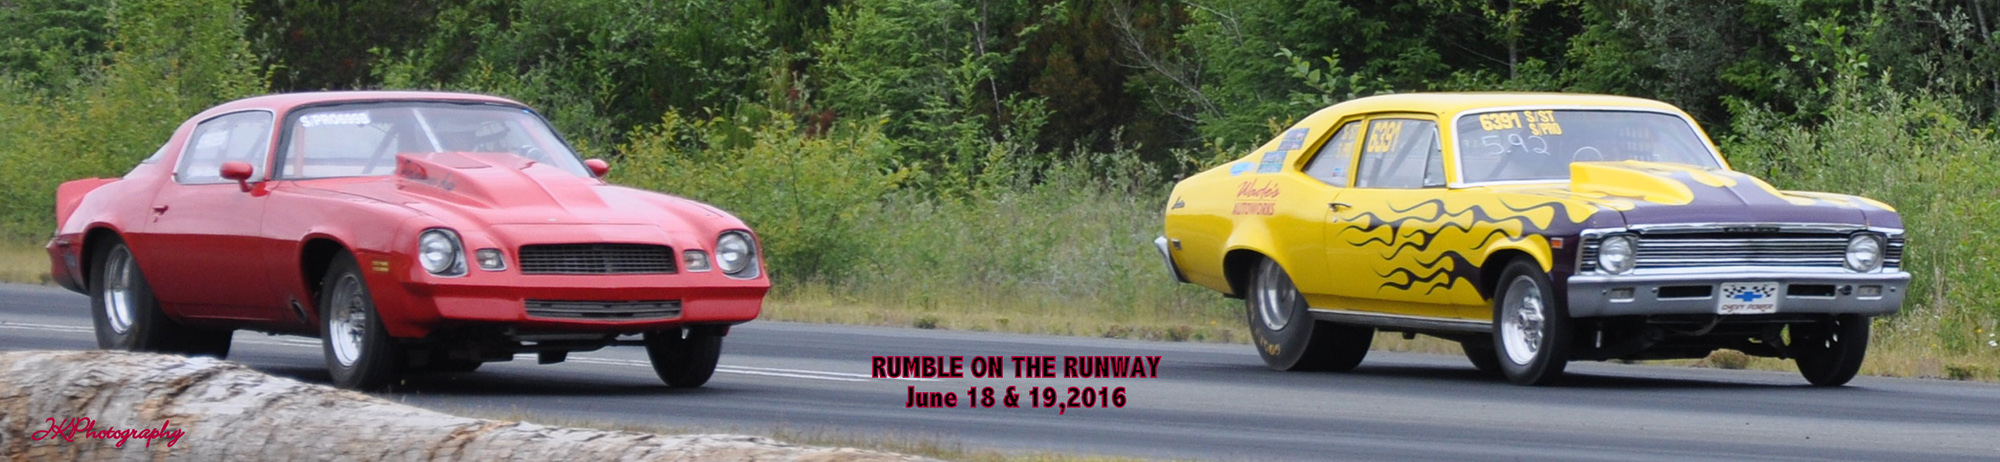 Rumble on the Runway June 18 & 19, 2016 476